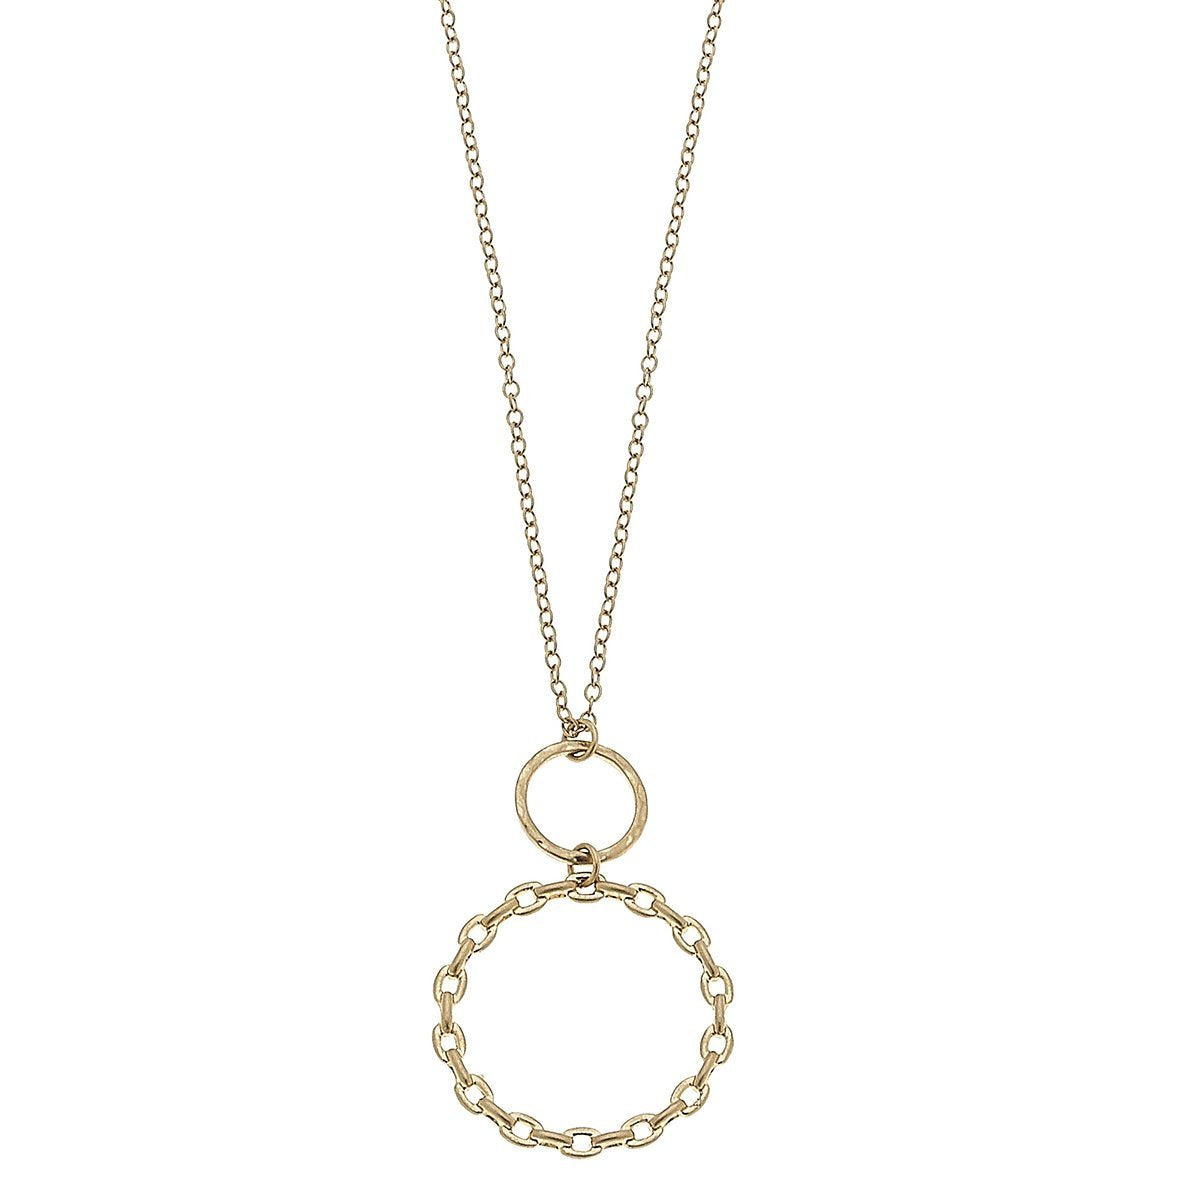 Allegra Pendant Necklace In Worn Gold